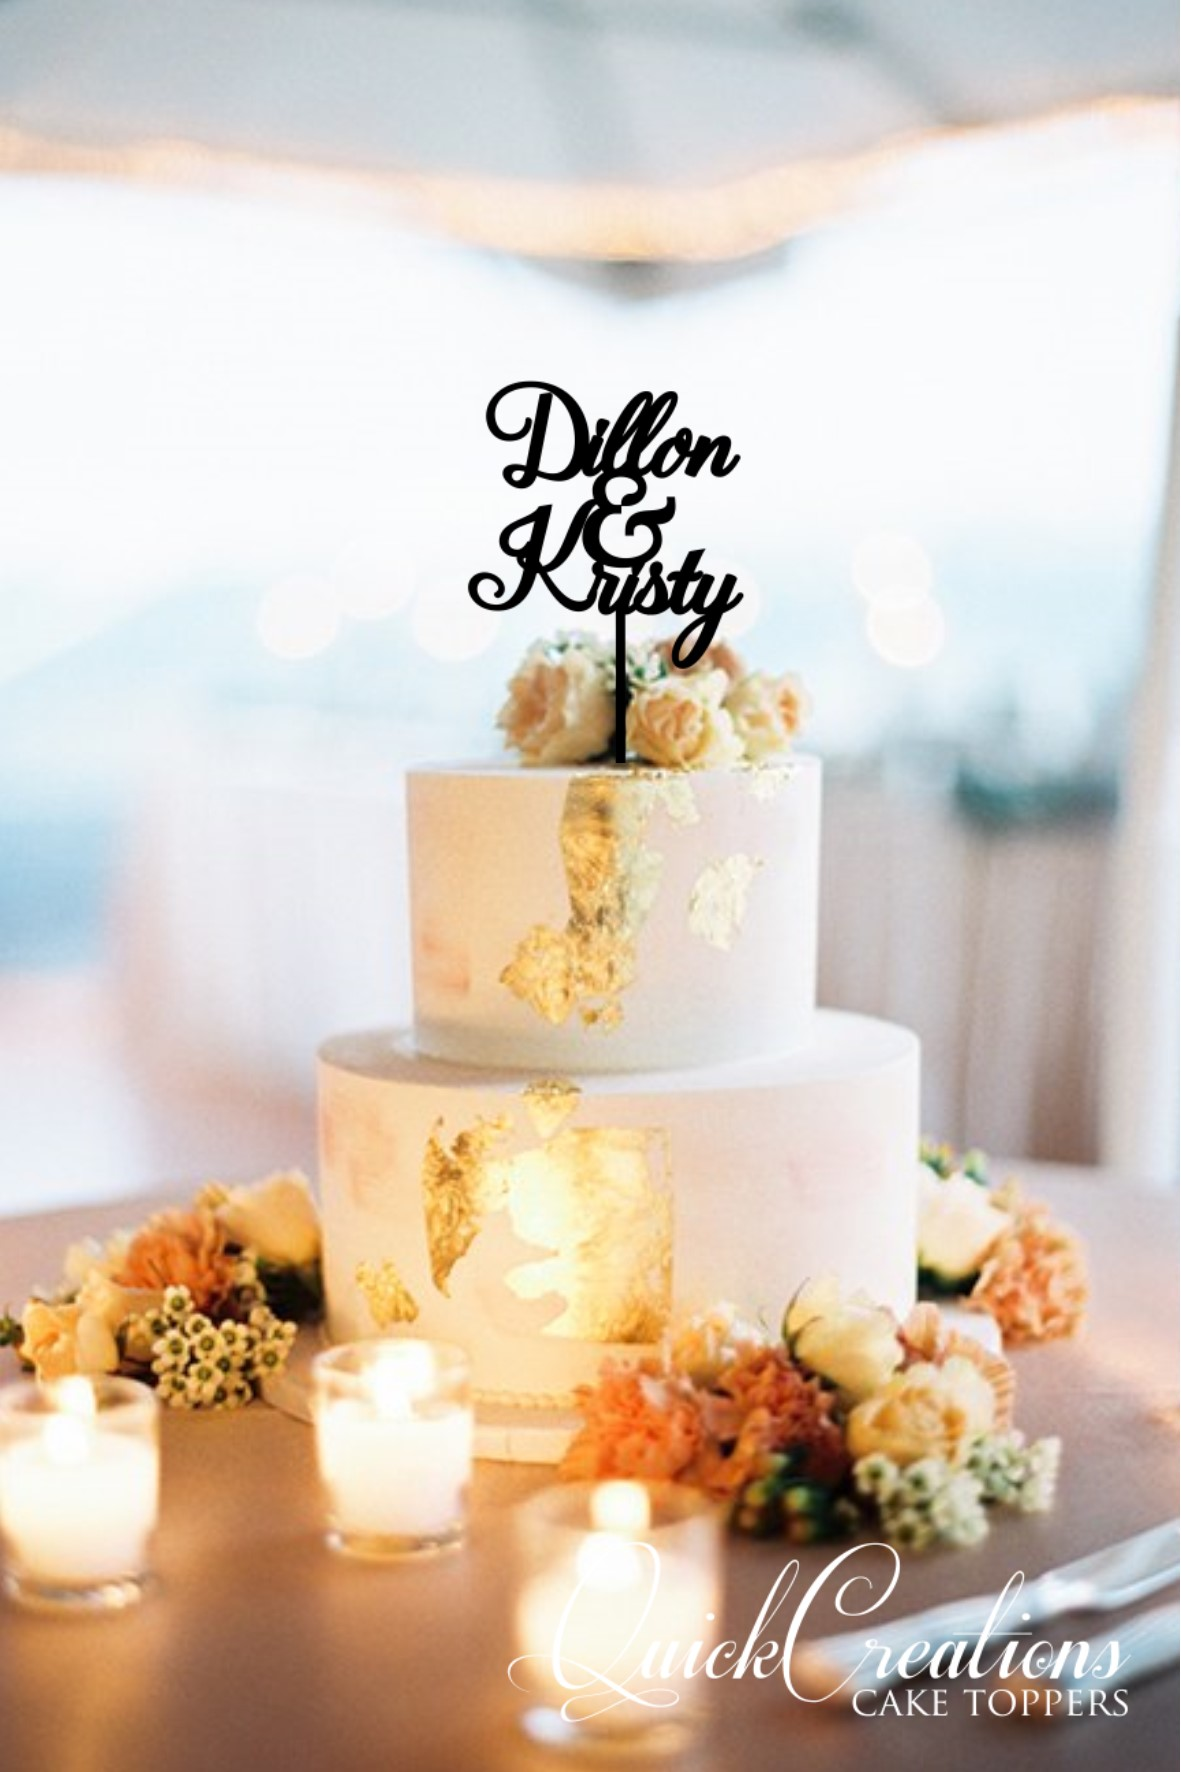 Quick Creations Cake Topper - Dillan & Kristy